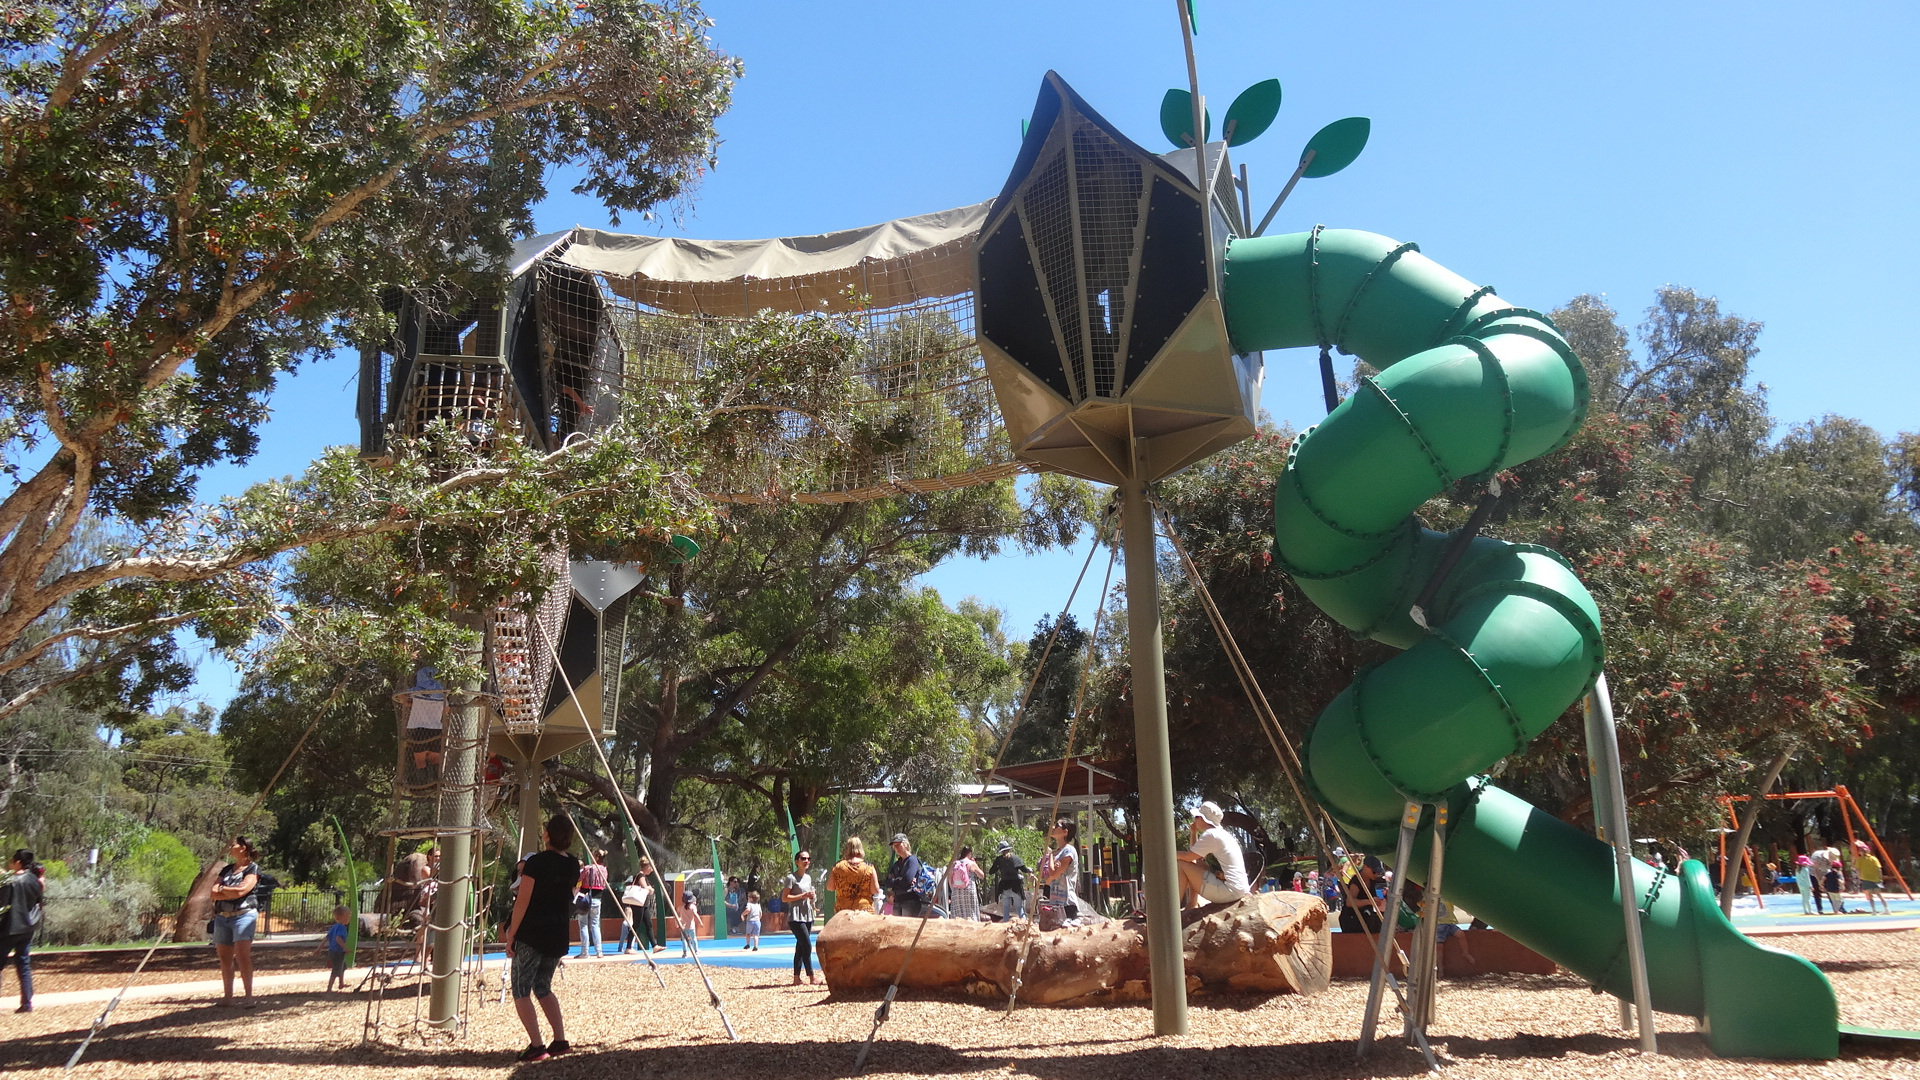 Bibra Lake's new Regional Playground